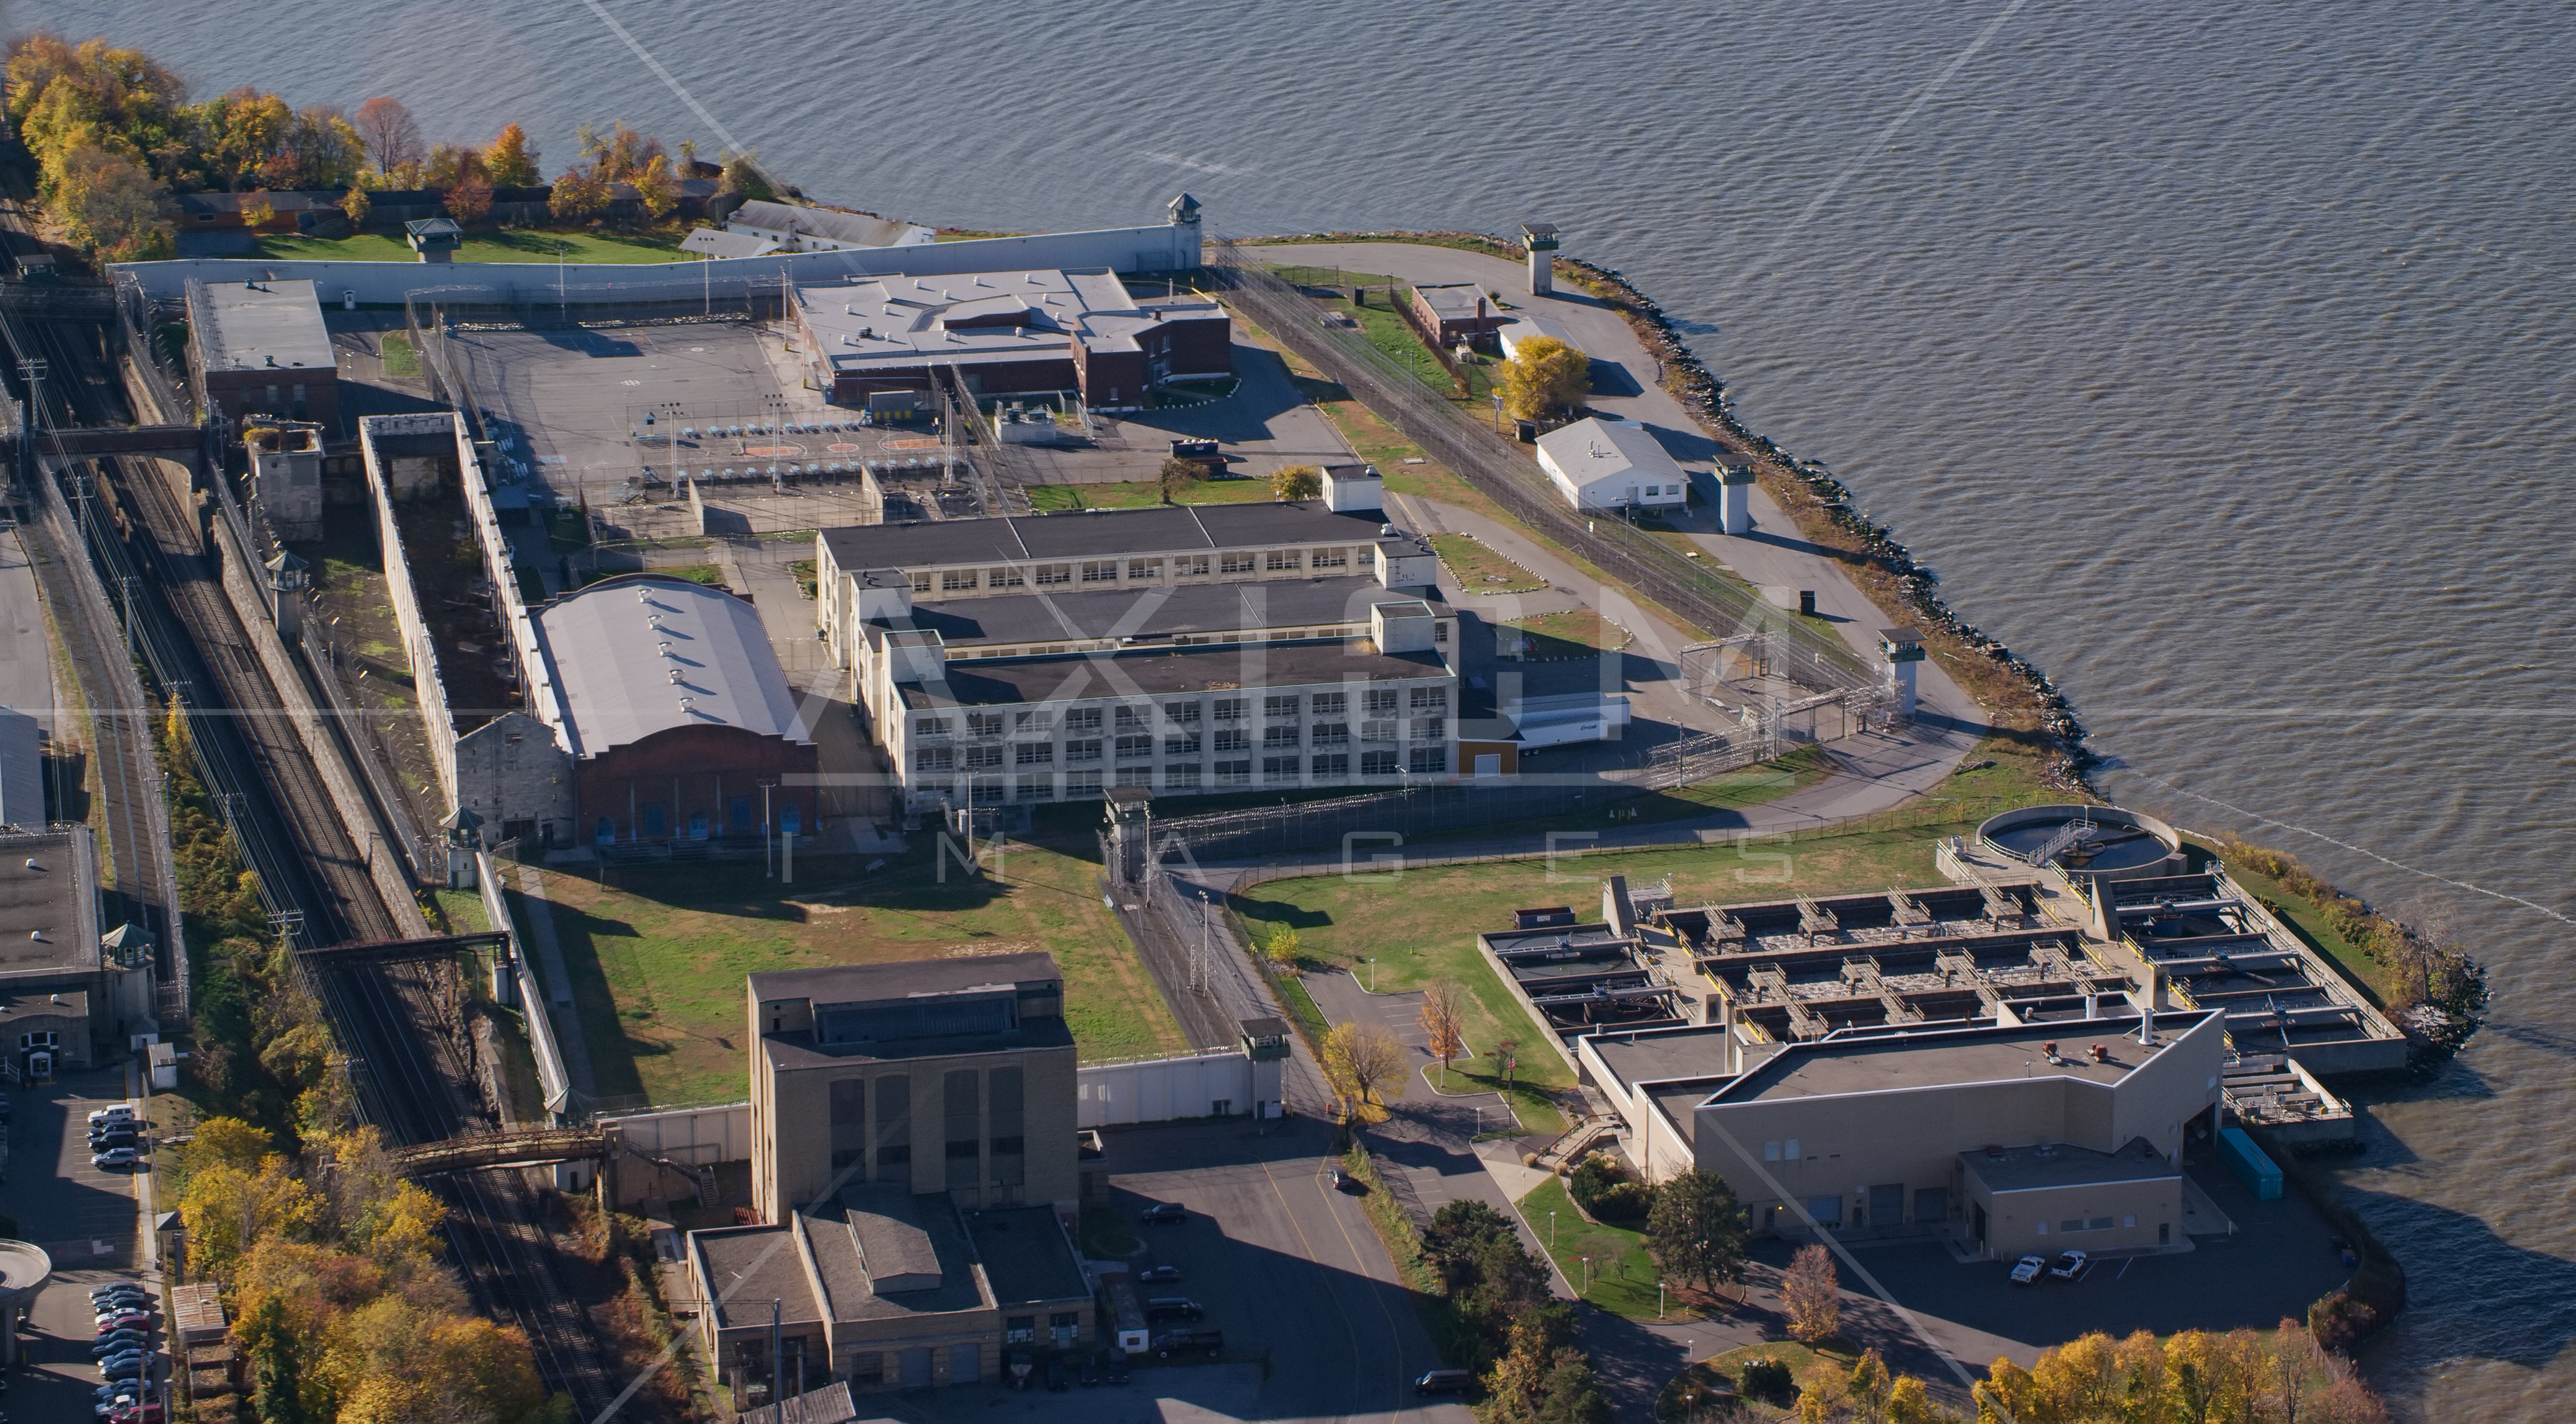 Buildings at Sing Sing Correctional Facility in Autumn